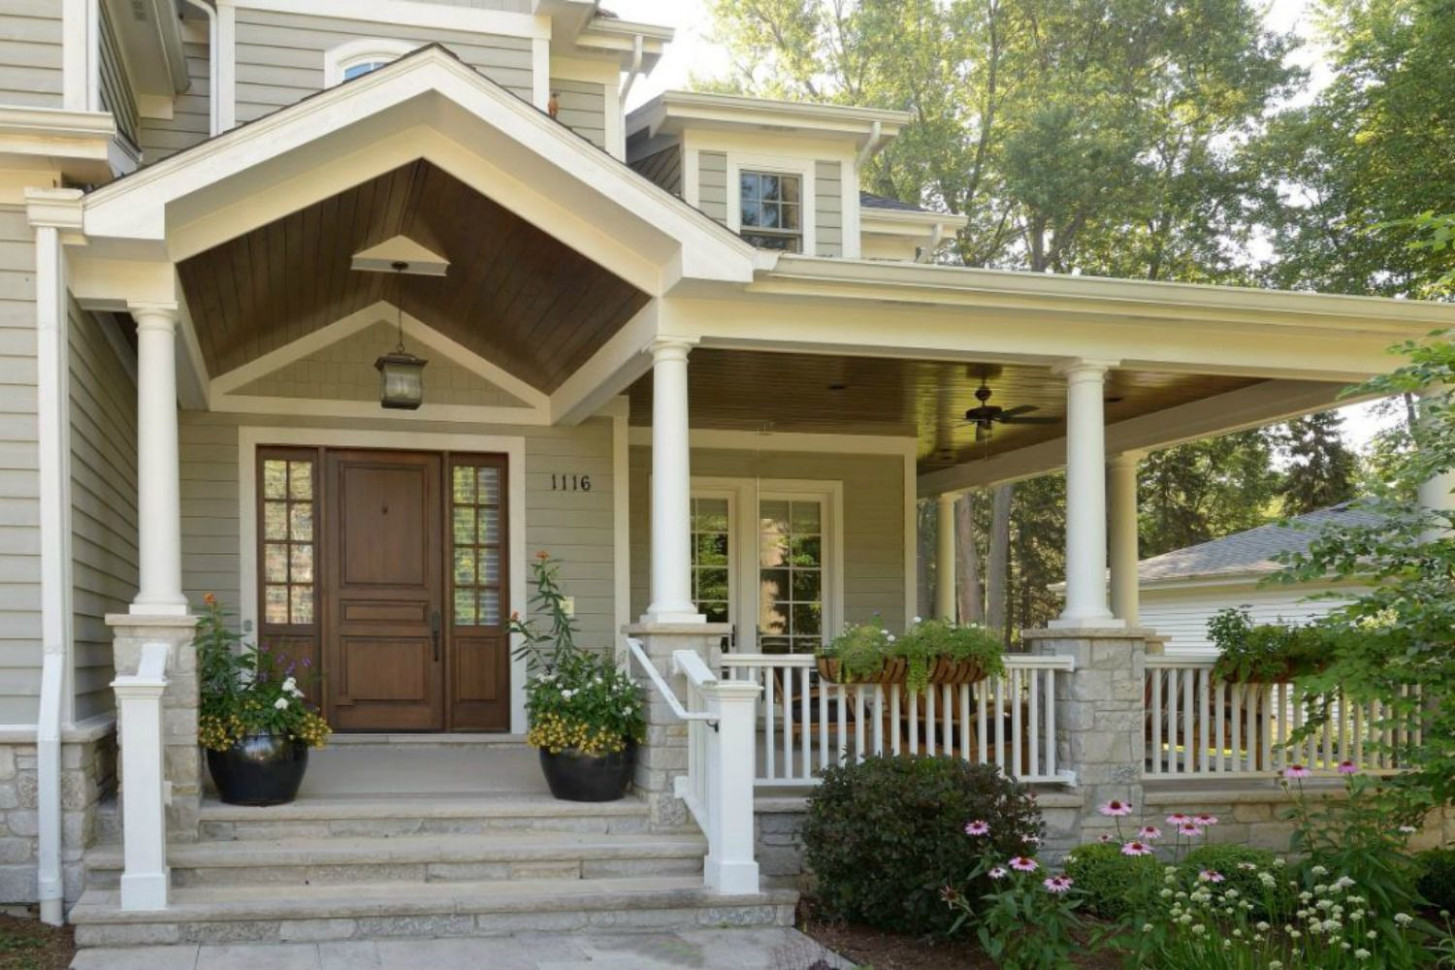 9 Porch Ideas For Every Type Of Home Victorian Carport Ideas